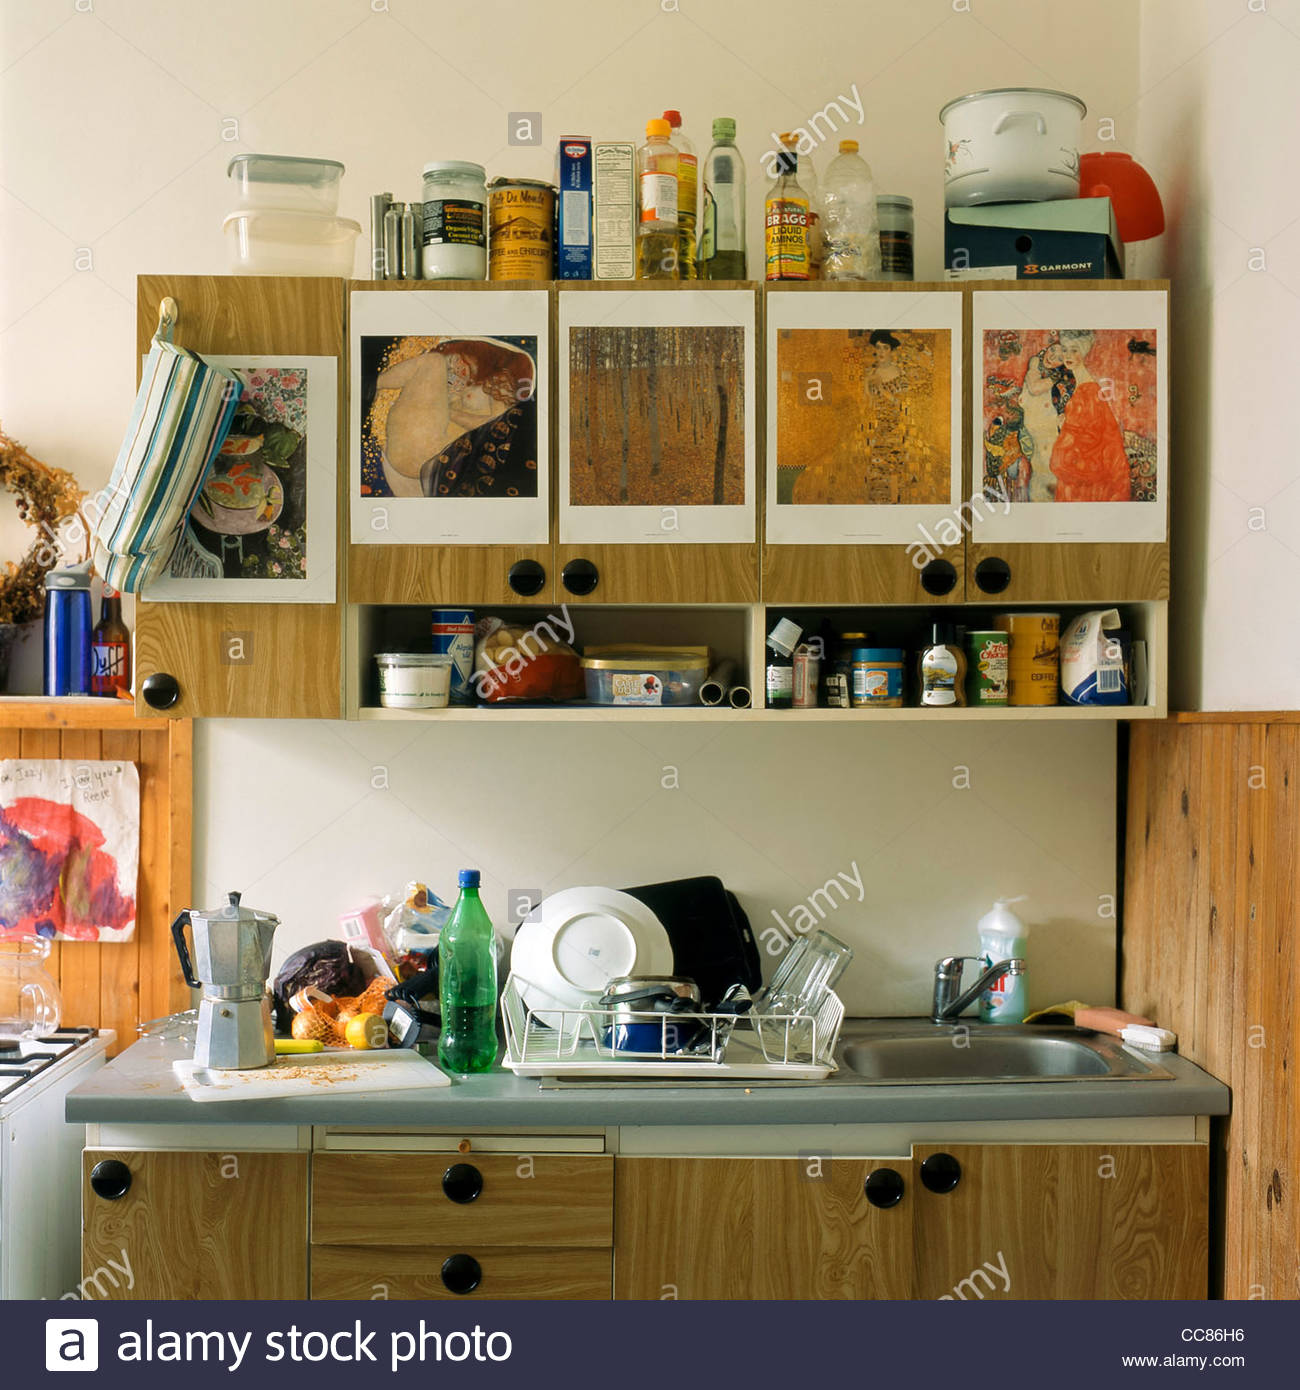 Messy Kitchen Counter: Messy Room Mess Stock Photos & Messy Room Mess Stock